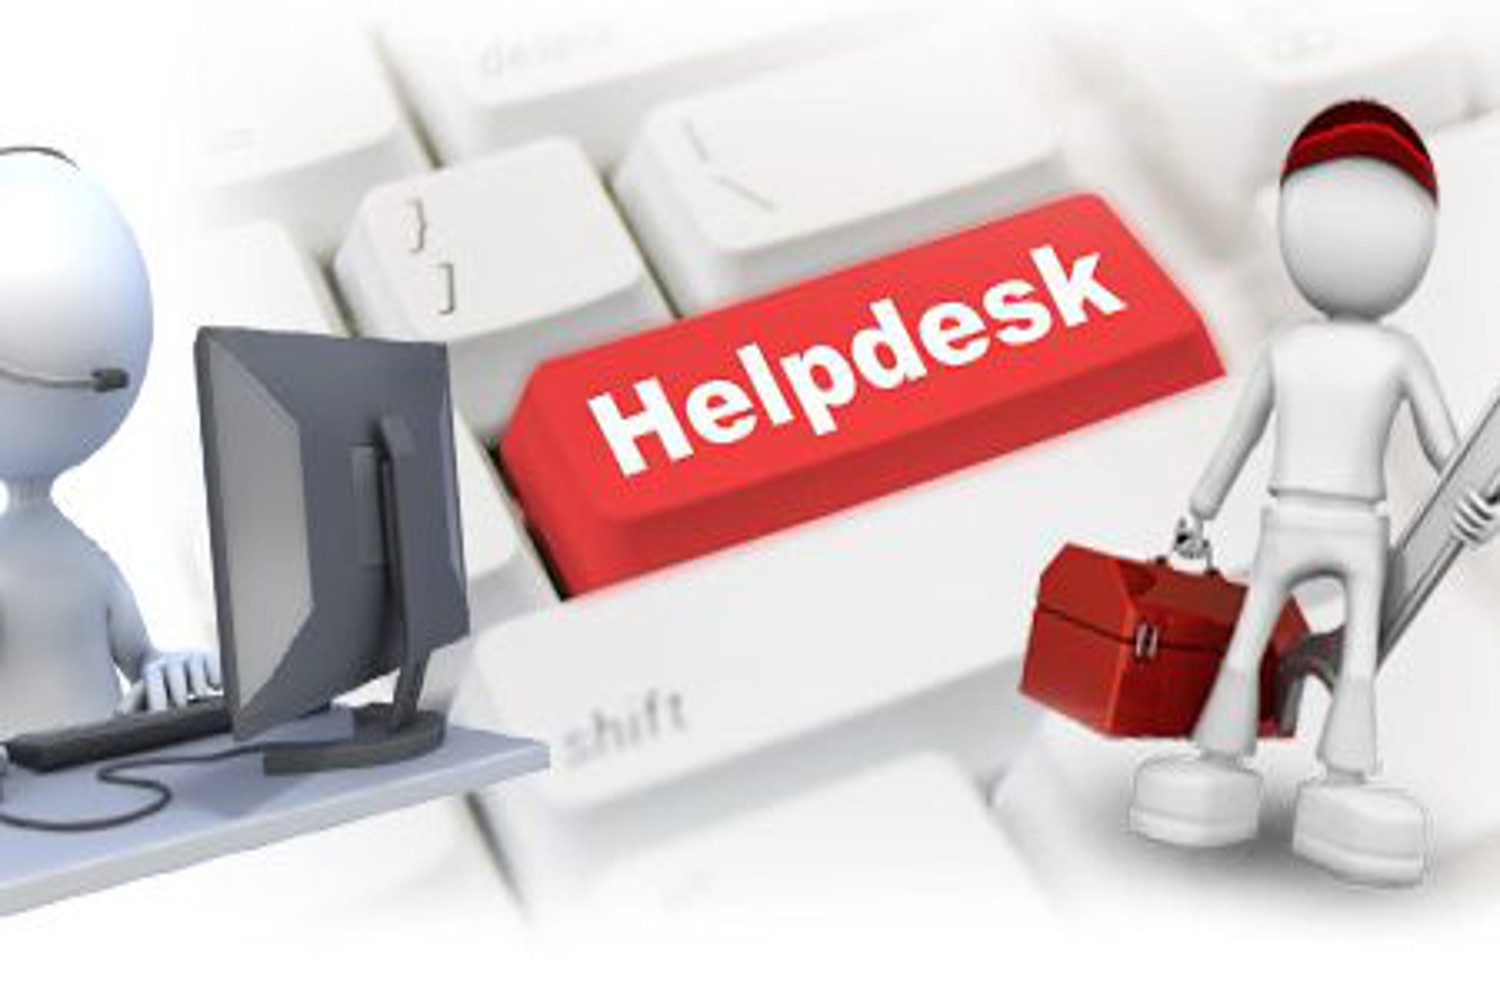 Helpdesk & Ticket Management